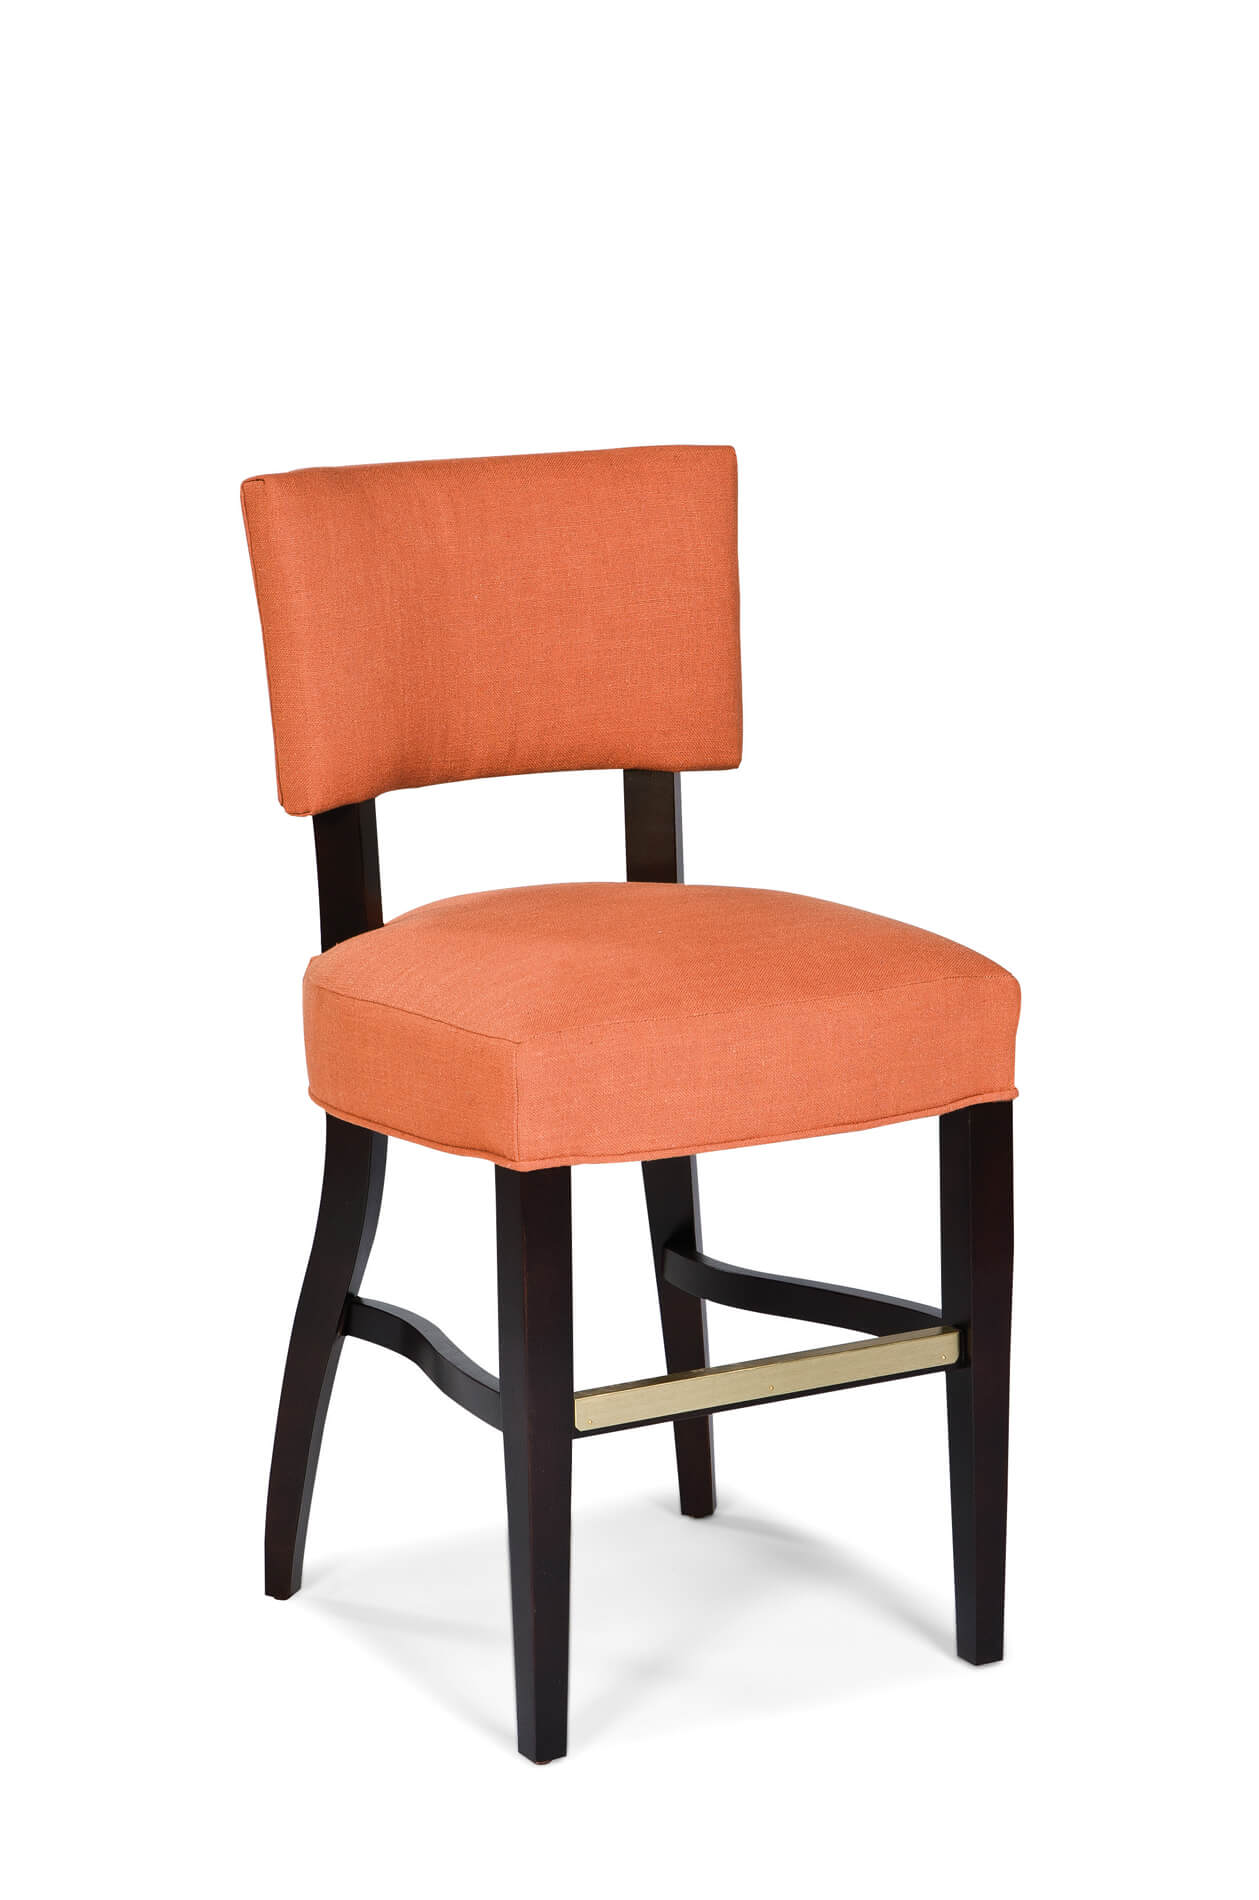 Fairfield's Niles Upholstered Wooden Stool with Back